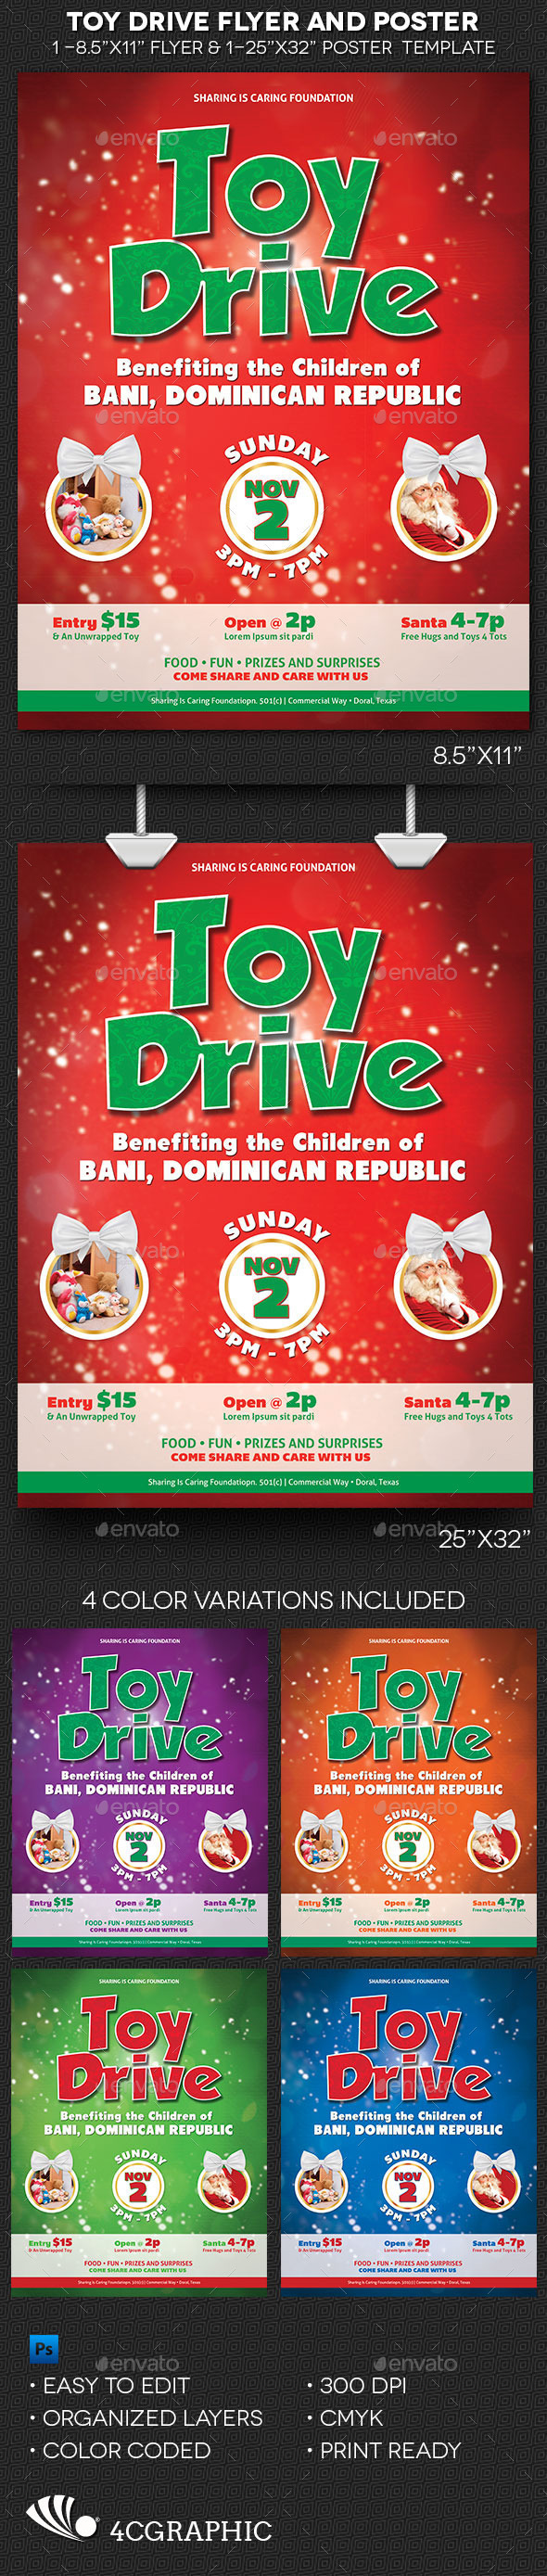 the toy drive flyer and poster template is great for fundraising events and christmas toy drive for charity organizations a festive and decorative dcor is